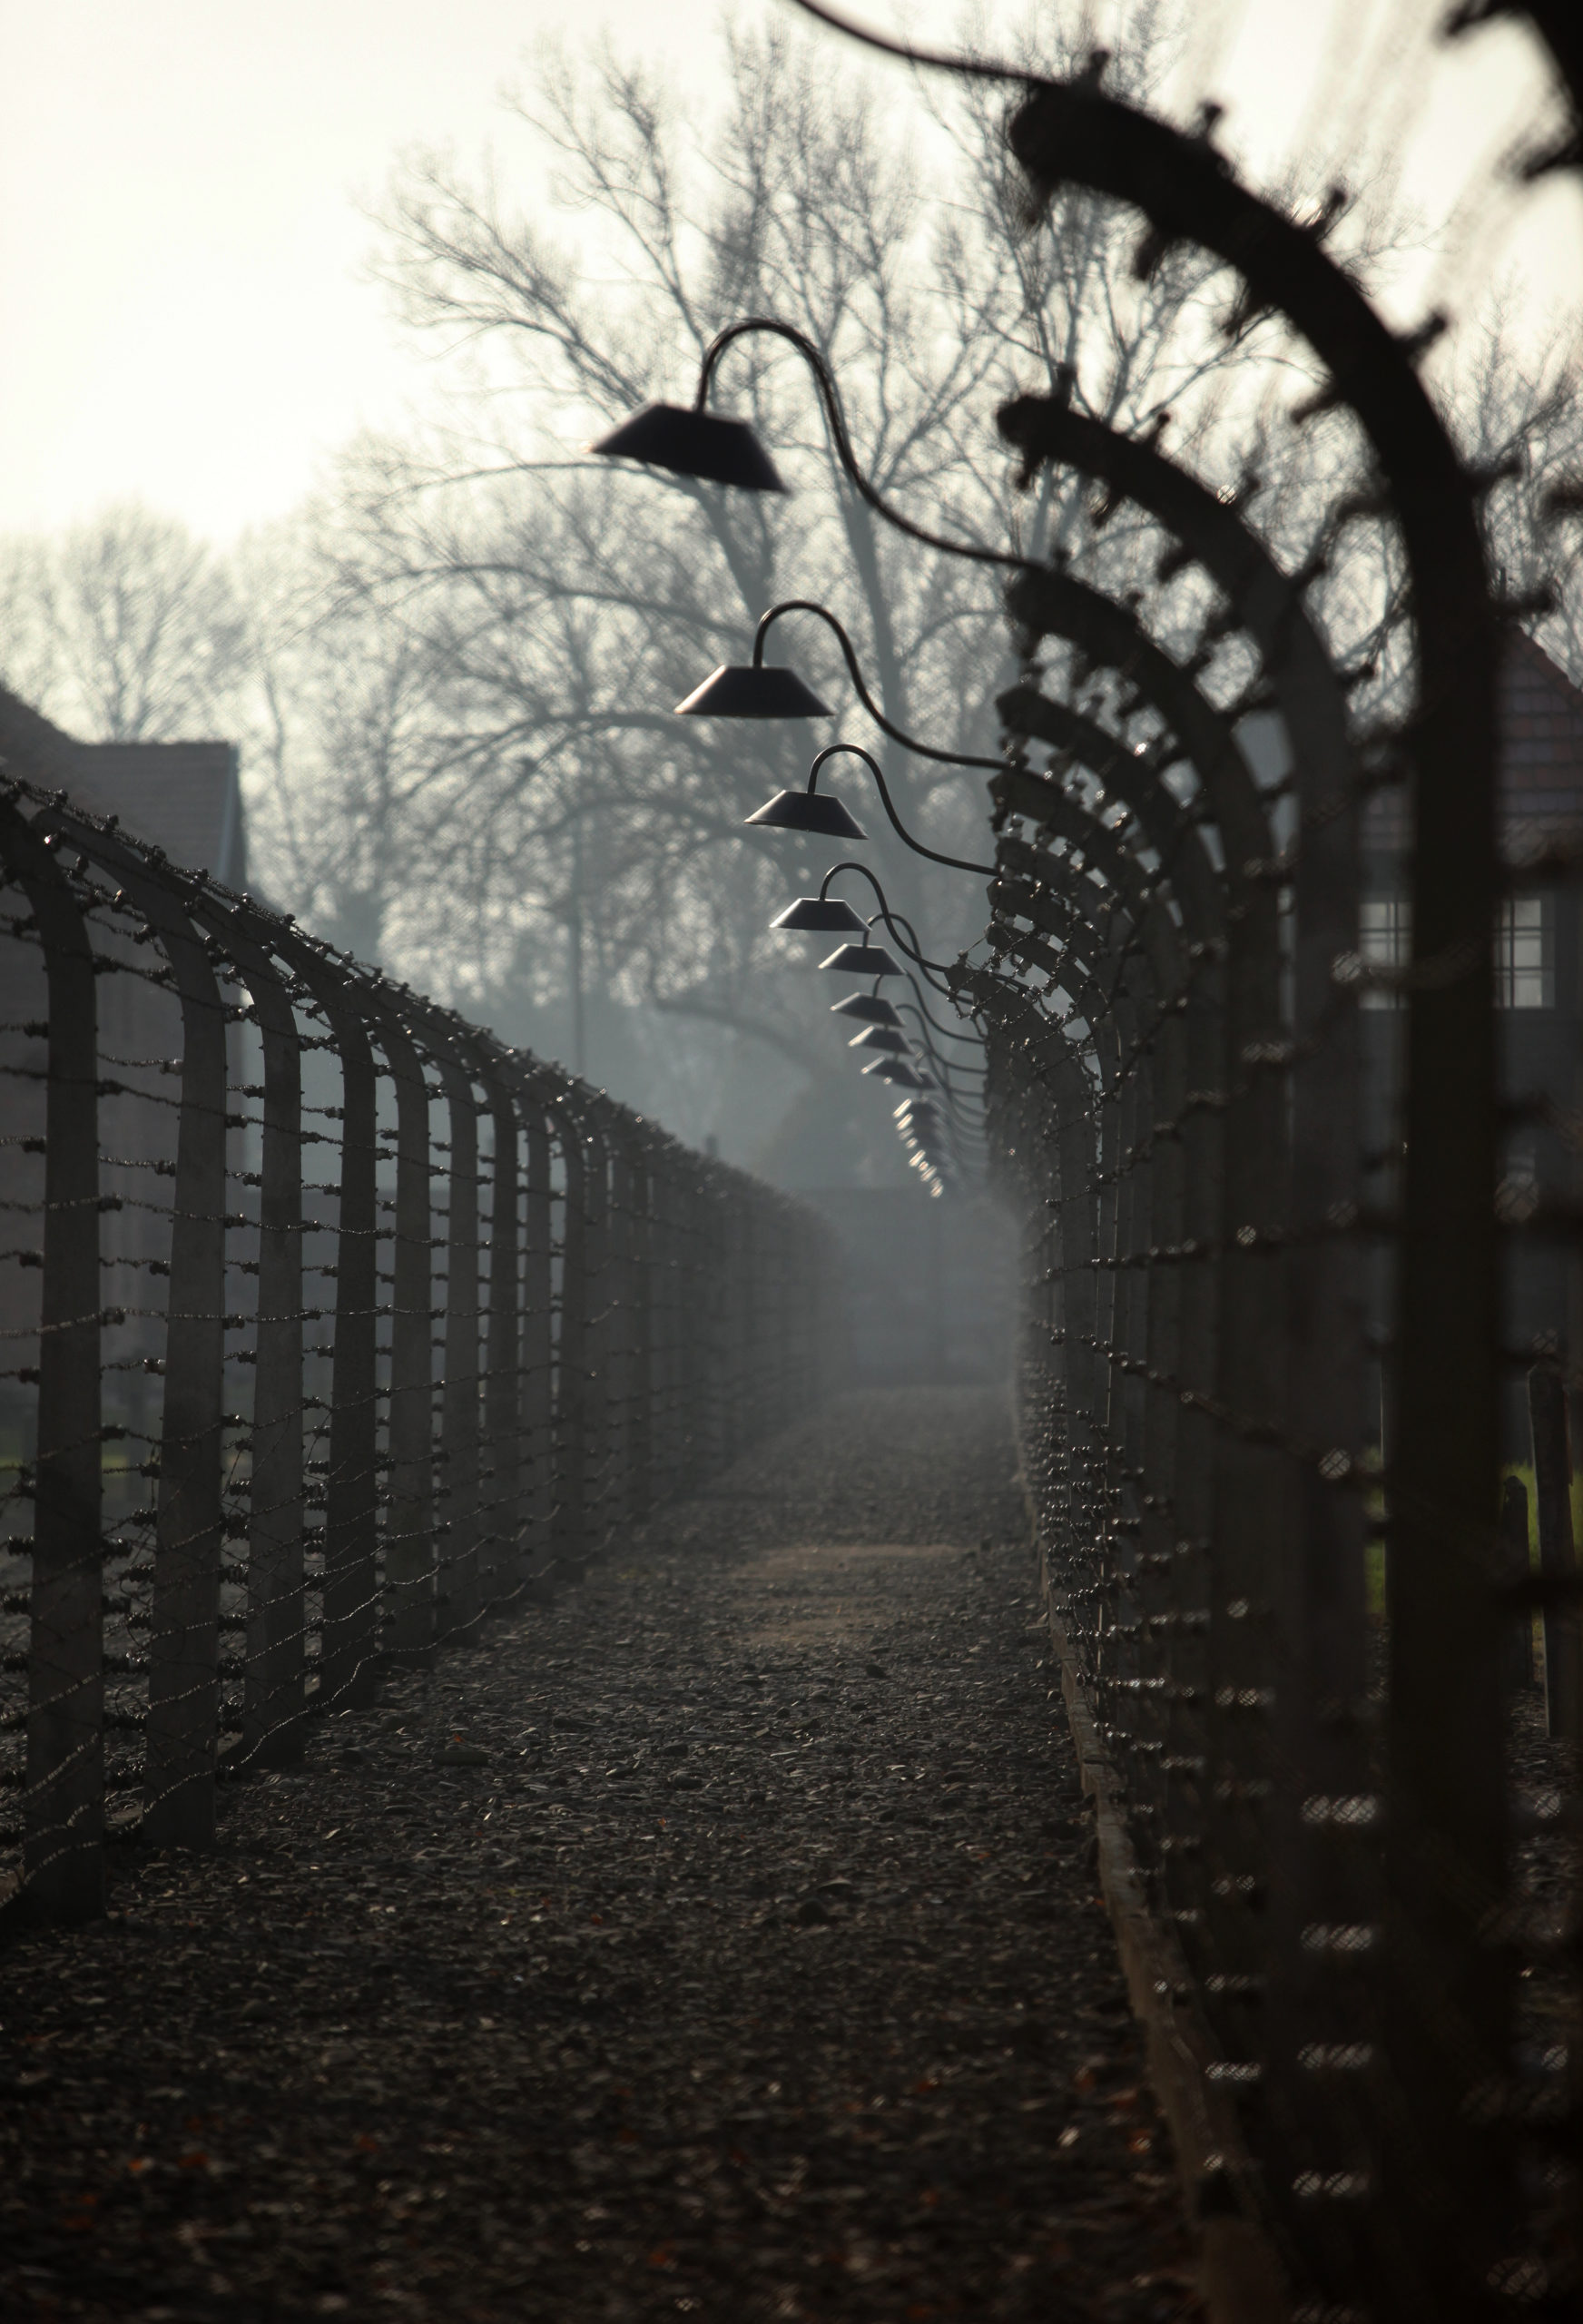 Photo of KL Auschwitz taken by Jaroslaw Praszkiewicz